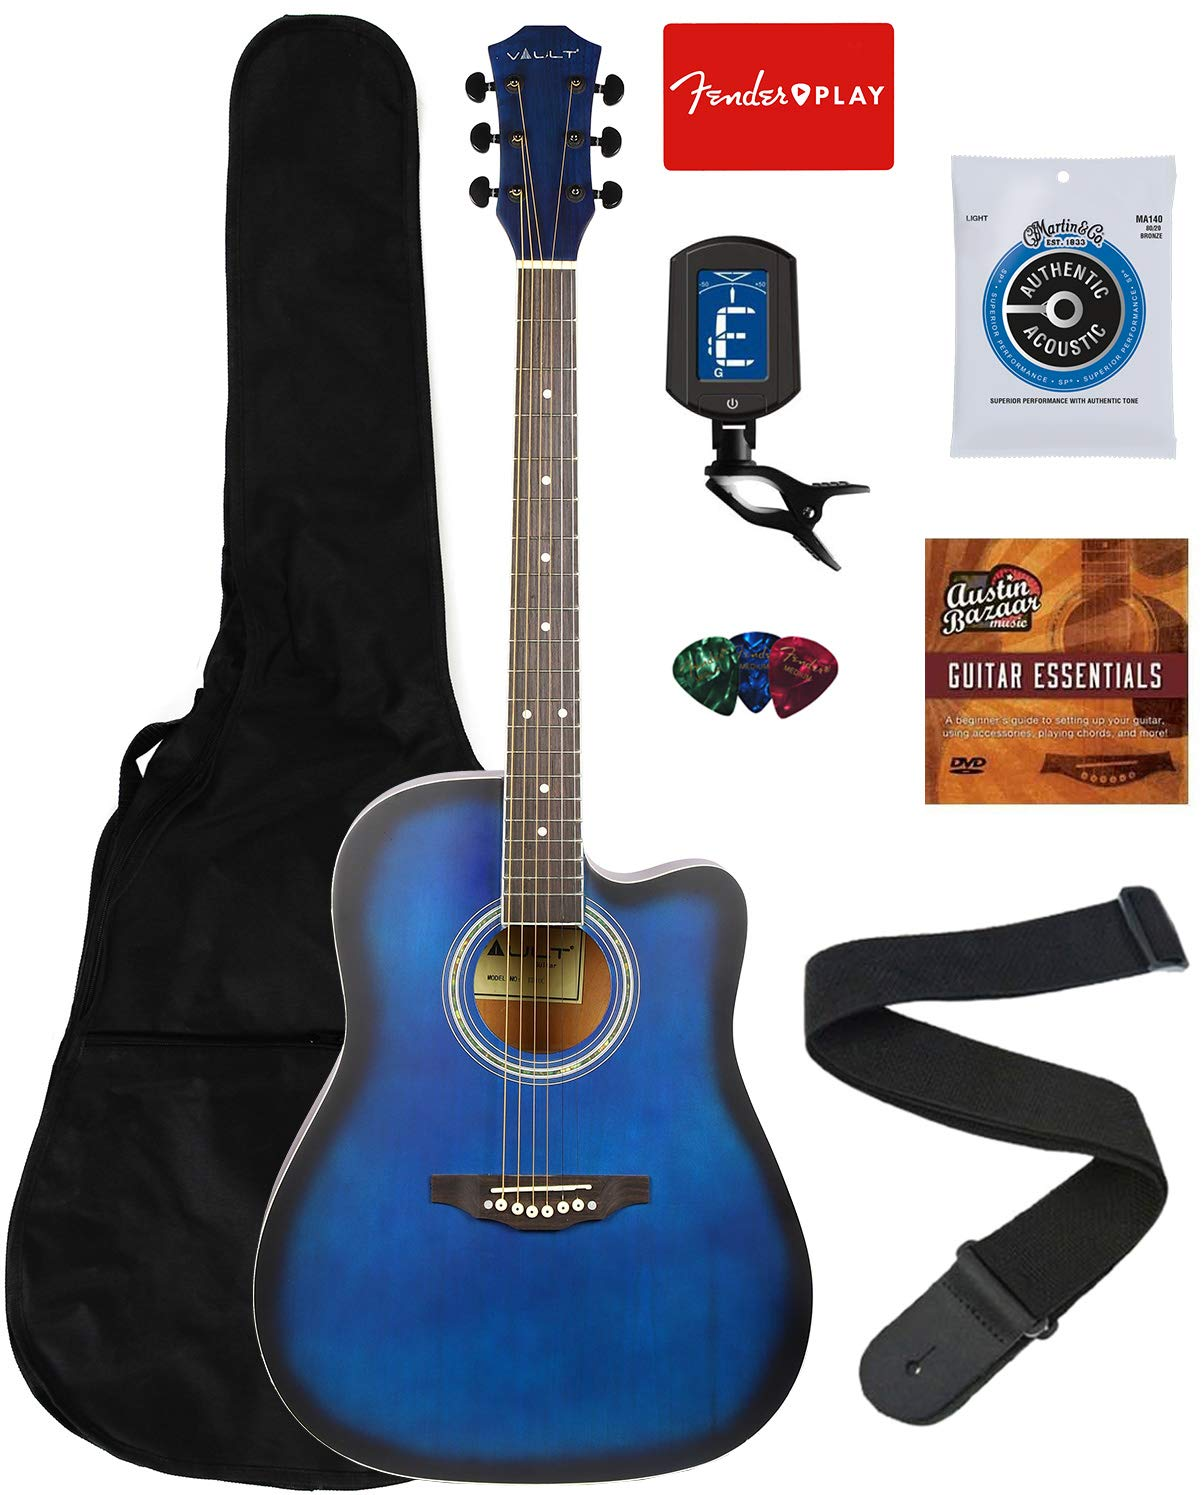 Vault 41-Inch Dreadnought Cut Away Acoustic Guitar - Blue Bundle with Gig Bag, Tuner, String, Picks, Strap, and Instructional DVD by VAULT